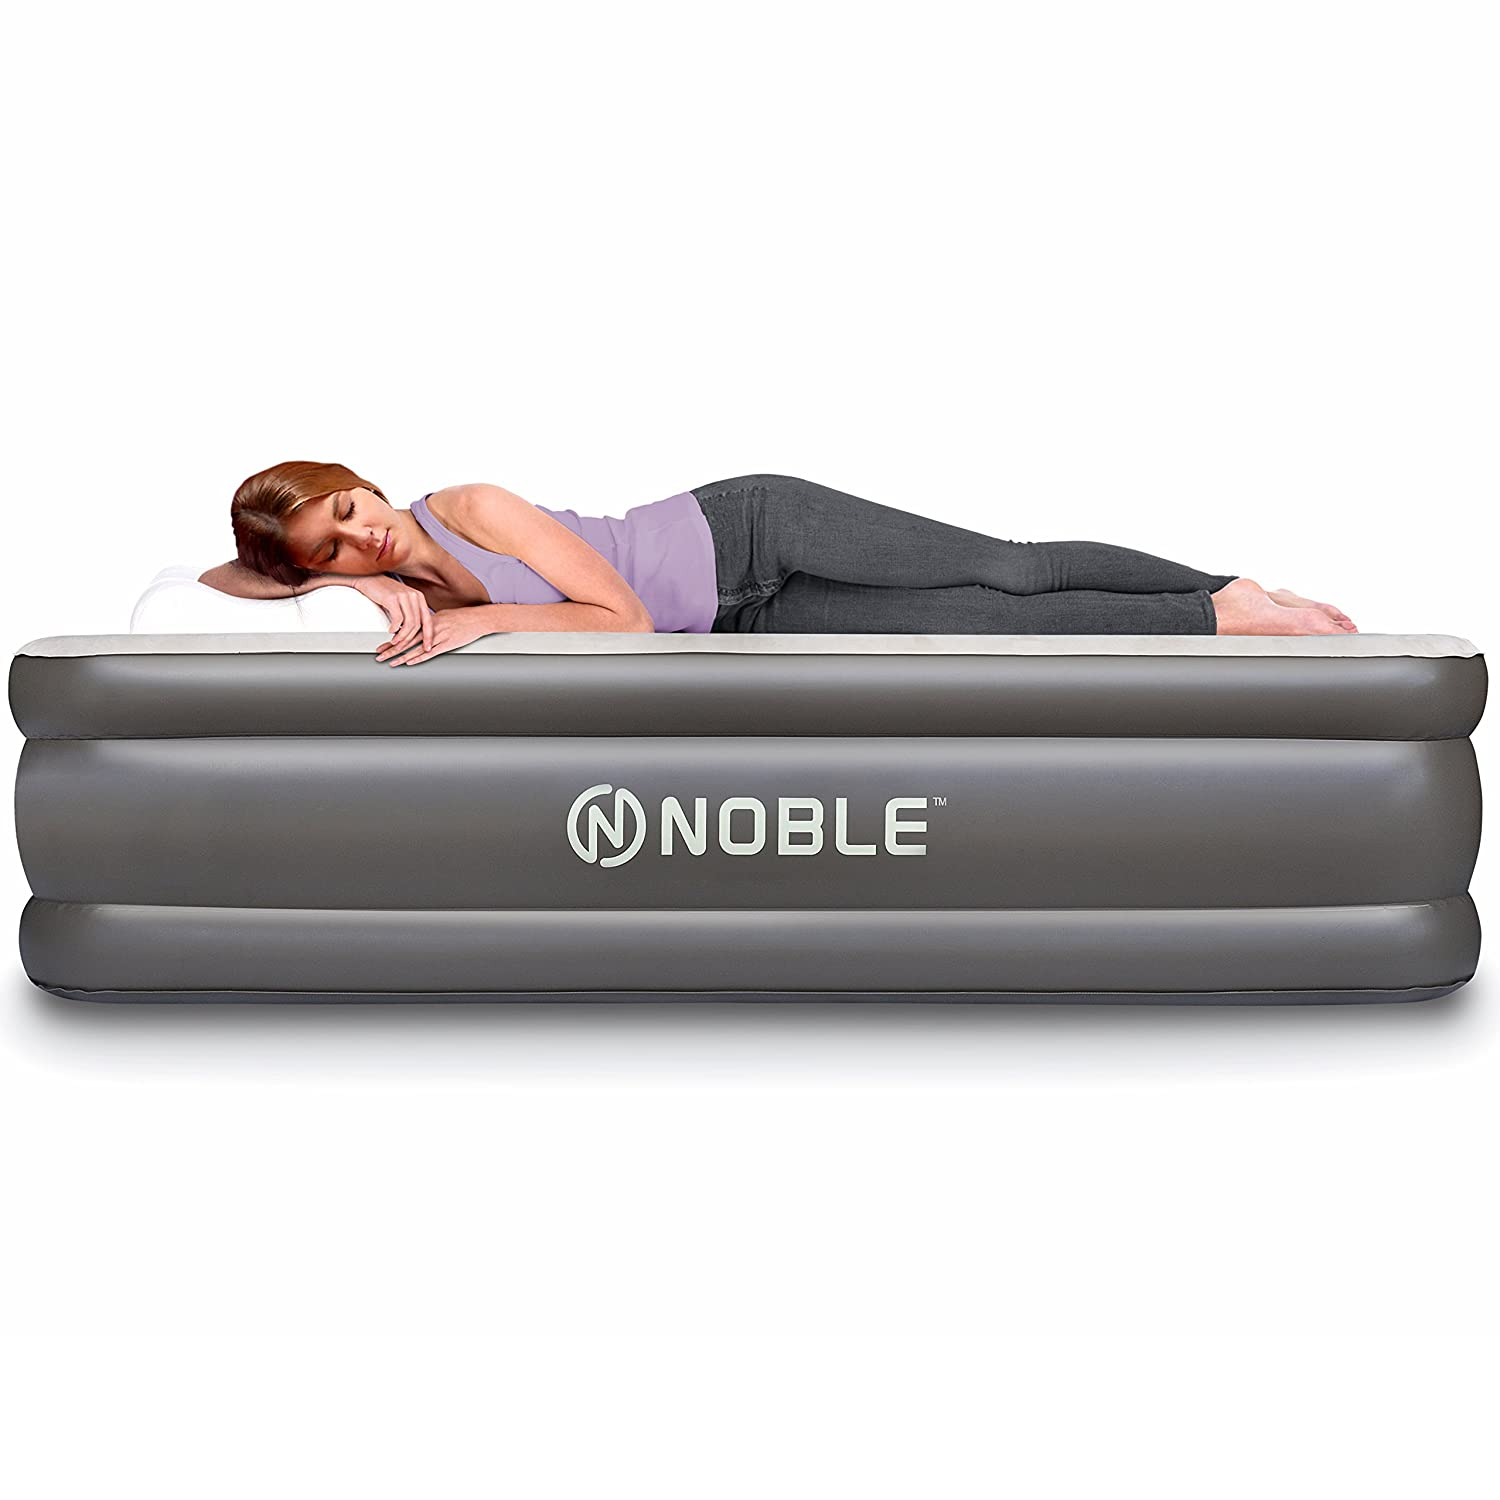 Noble Twin XL Size Comfort Double HIGH Raised Air Mattress - Top Inflatable Airbed with Built-in Pump - Elevated Raised Air Mattress Quilt Top & 1-Year Guarantee Sun Pleasure 92181